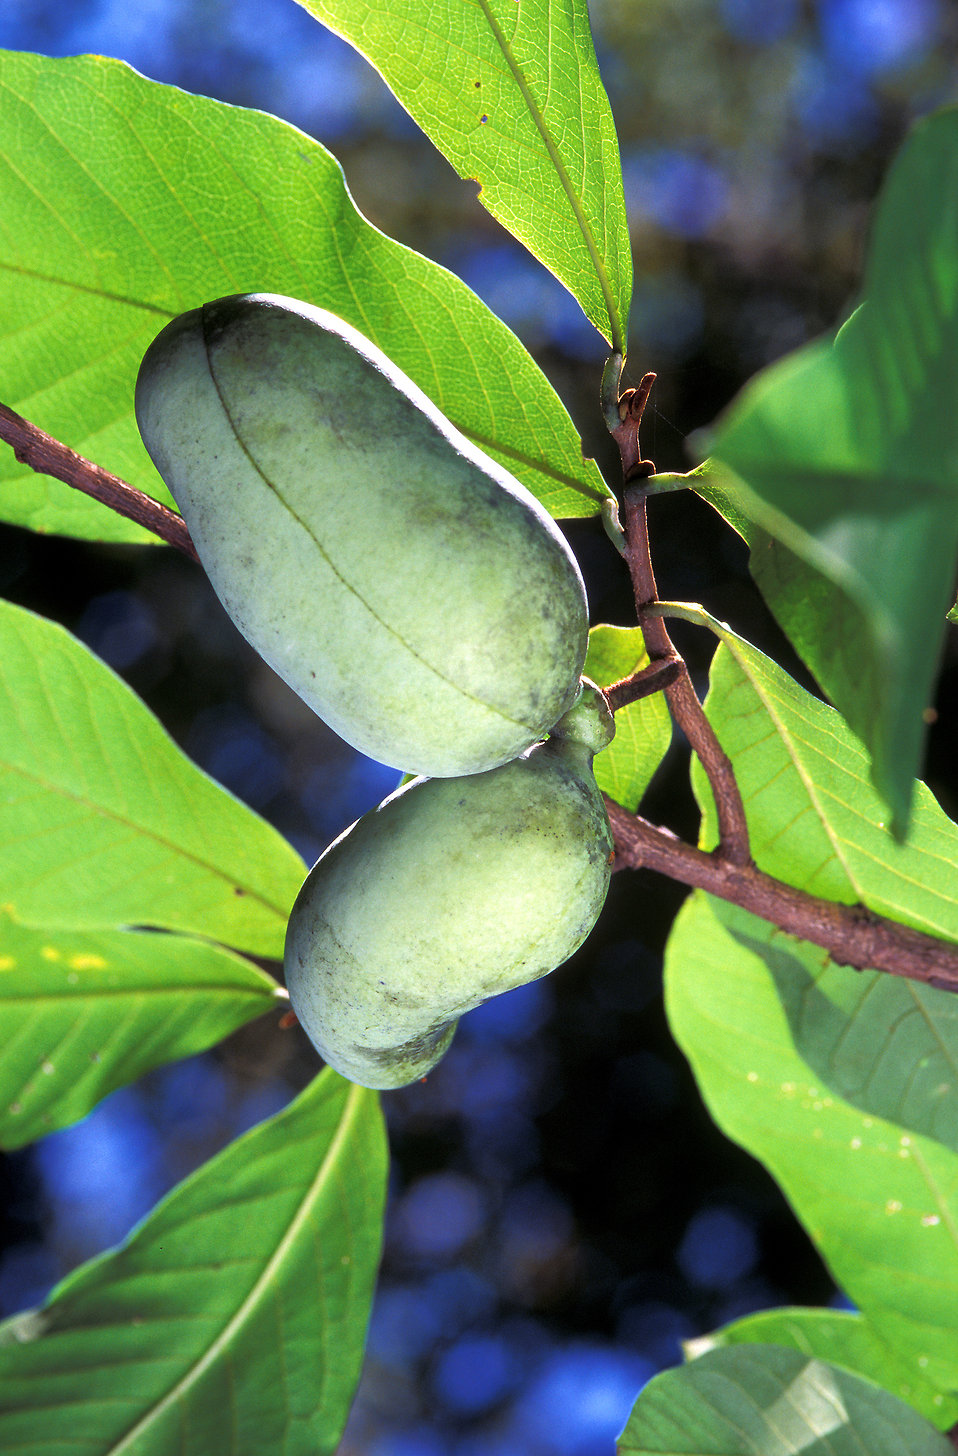 Pawpaw fruit growing on a tree : Free Stock Photo